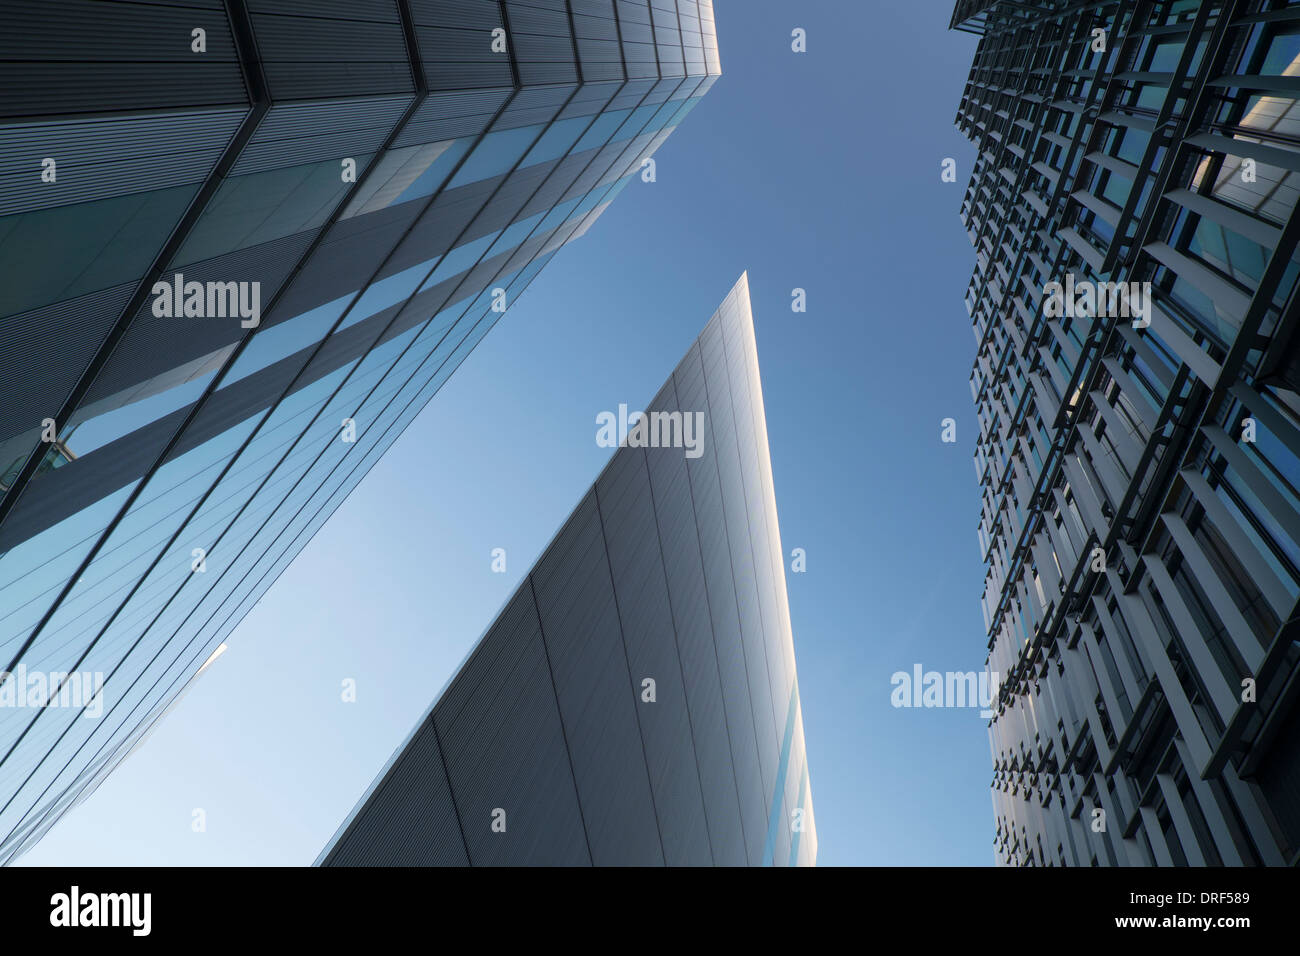 Modern Office building against blue sky, Financial district, London - Stock Image